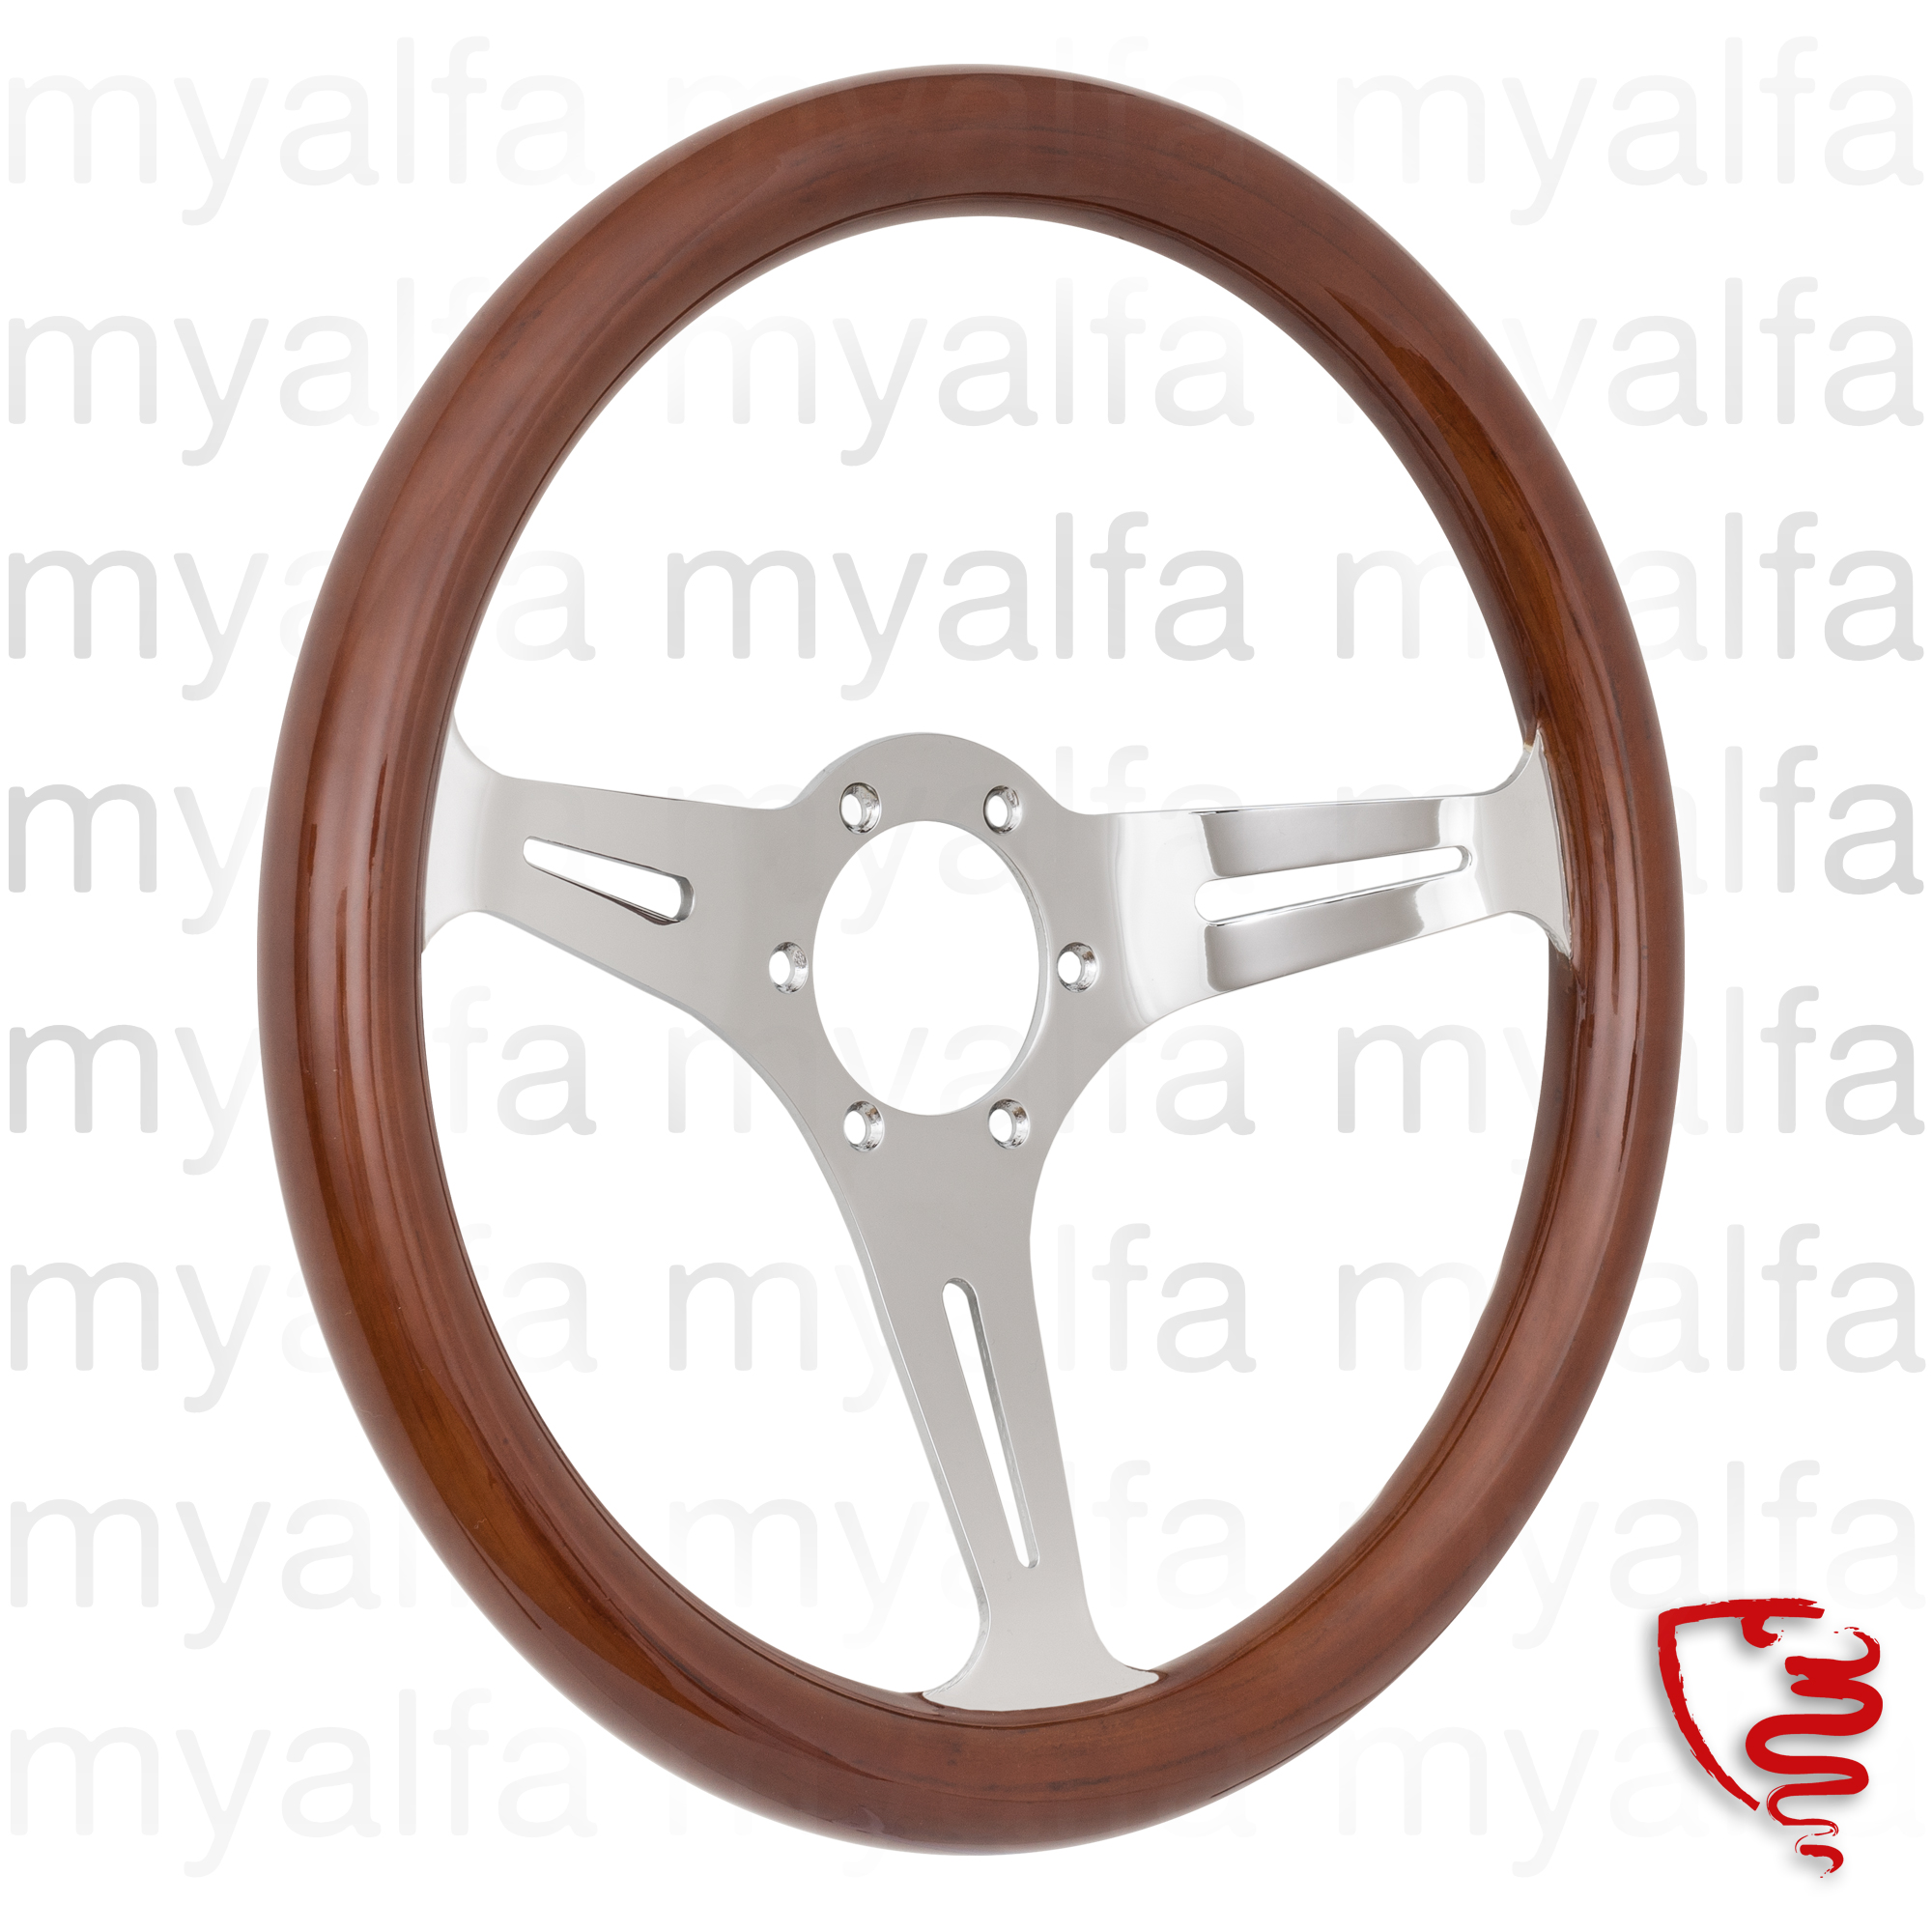 Steering wheel 350mm Mahogany Brown w / chrome arms for 105/115, Interior, Steering wheels, Wood